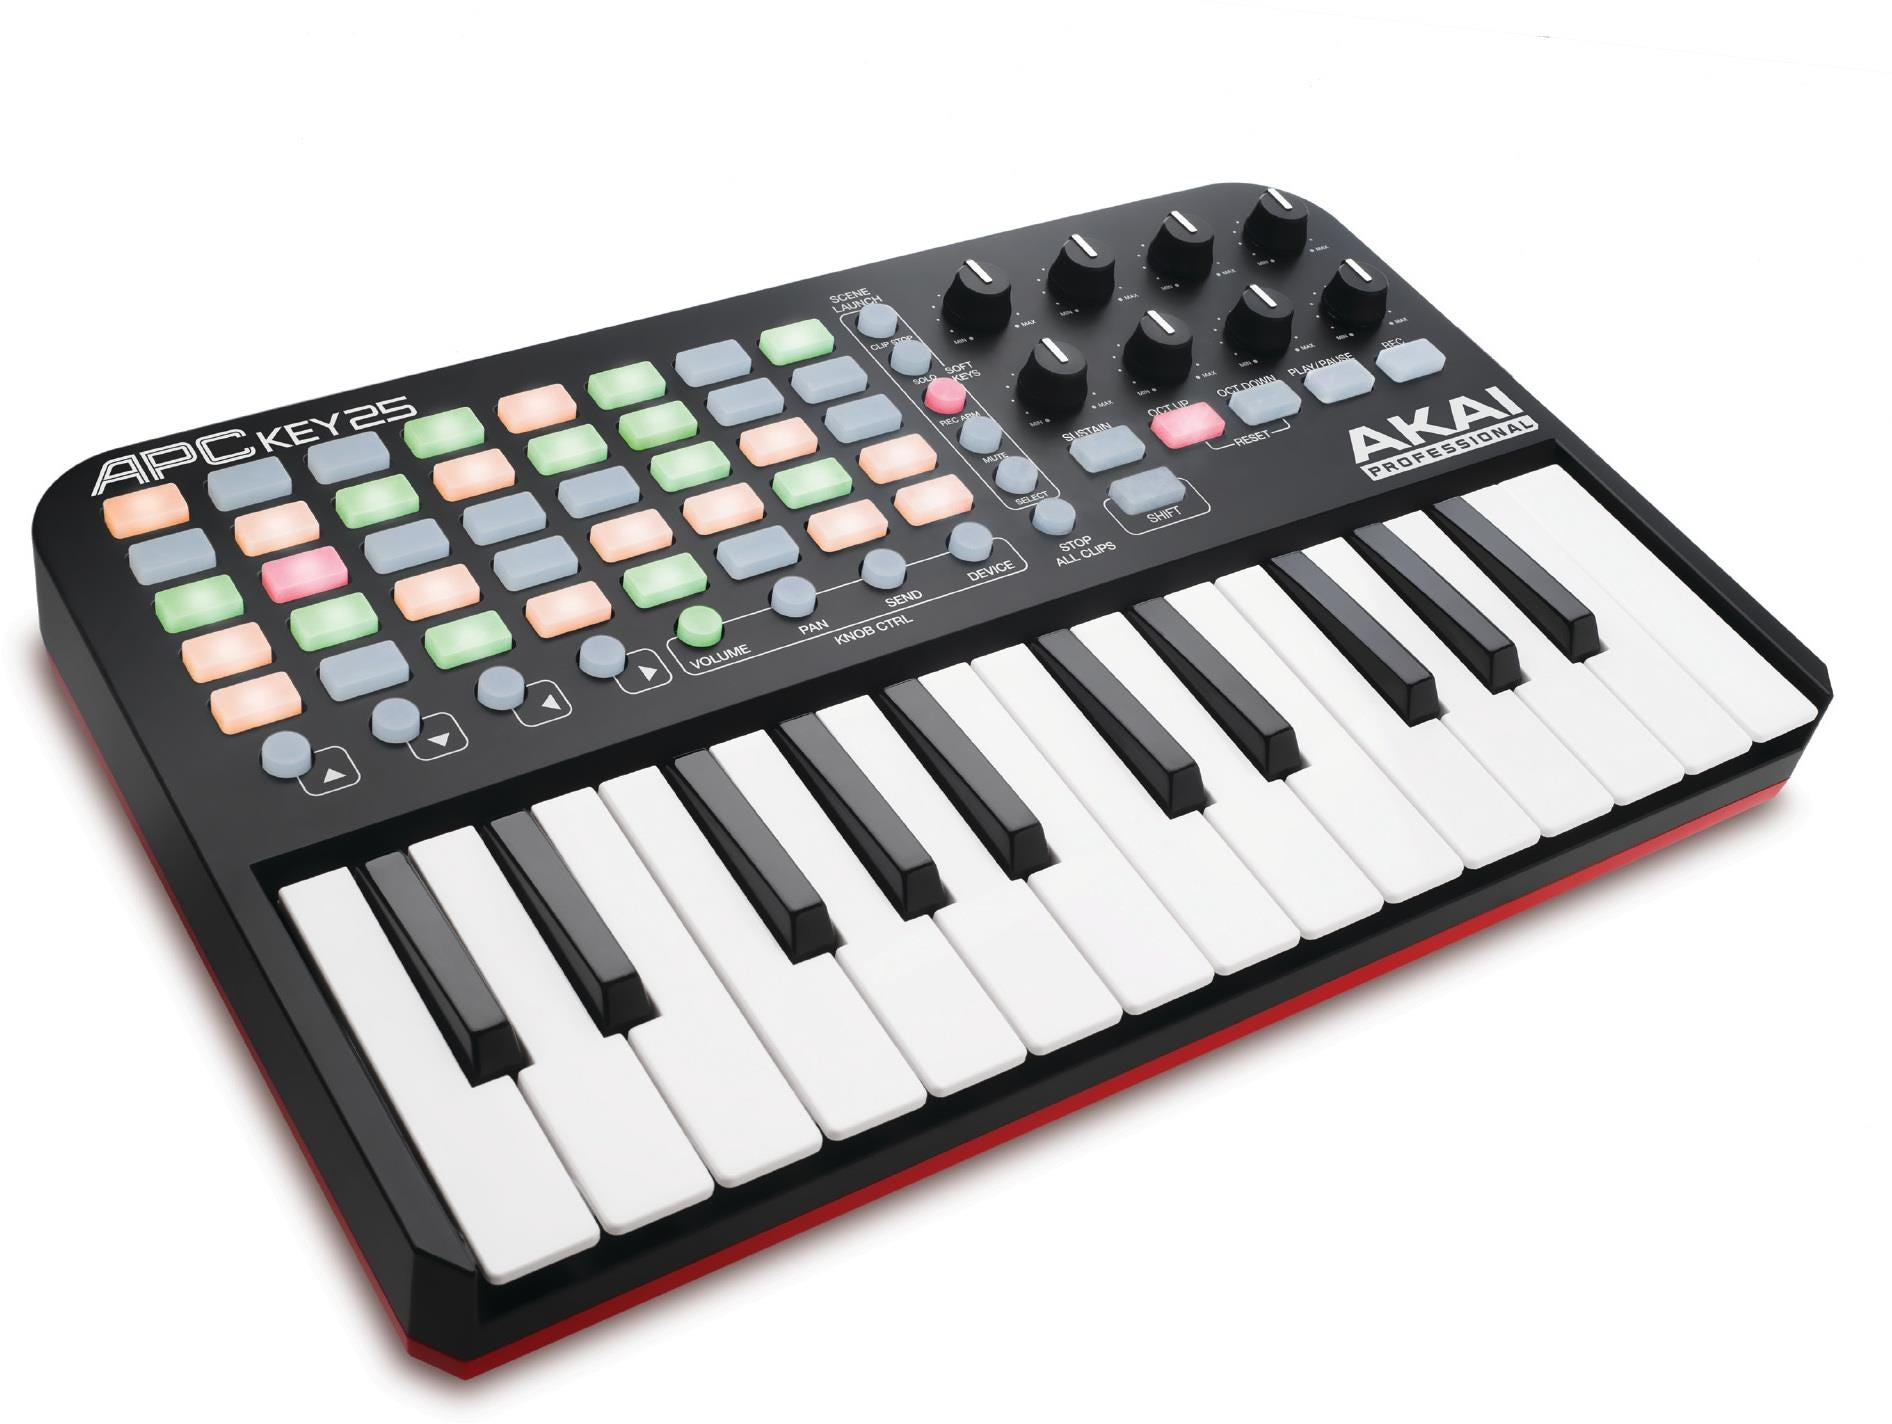 Akai Ableton Live Controller with Keyboard APC Key 25